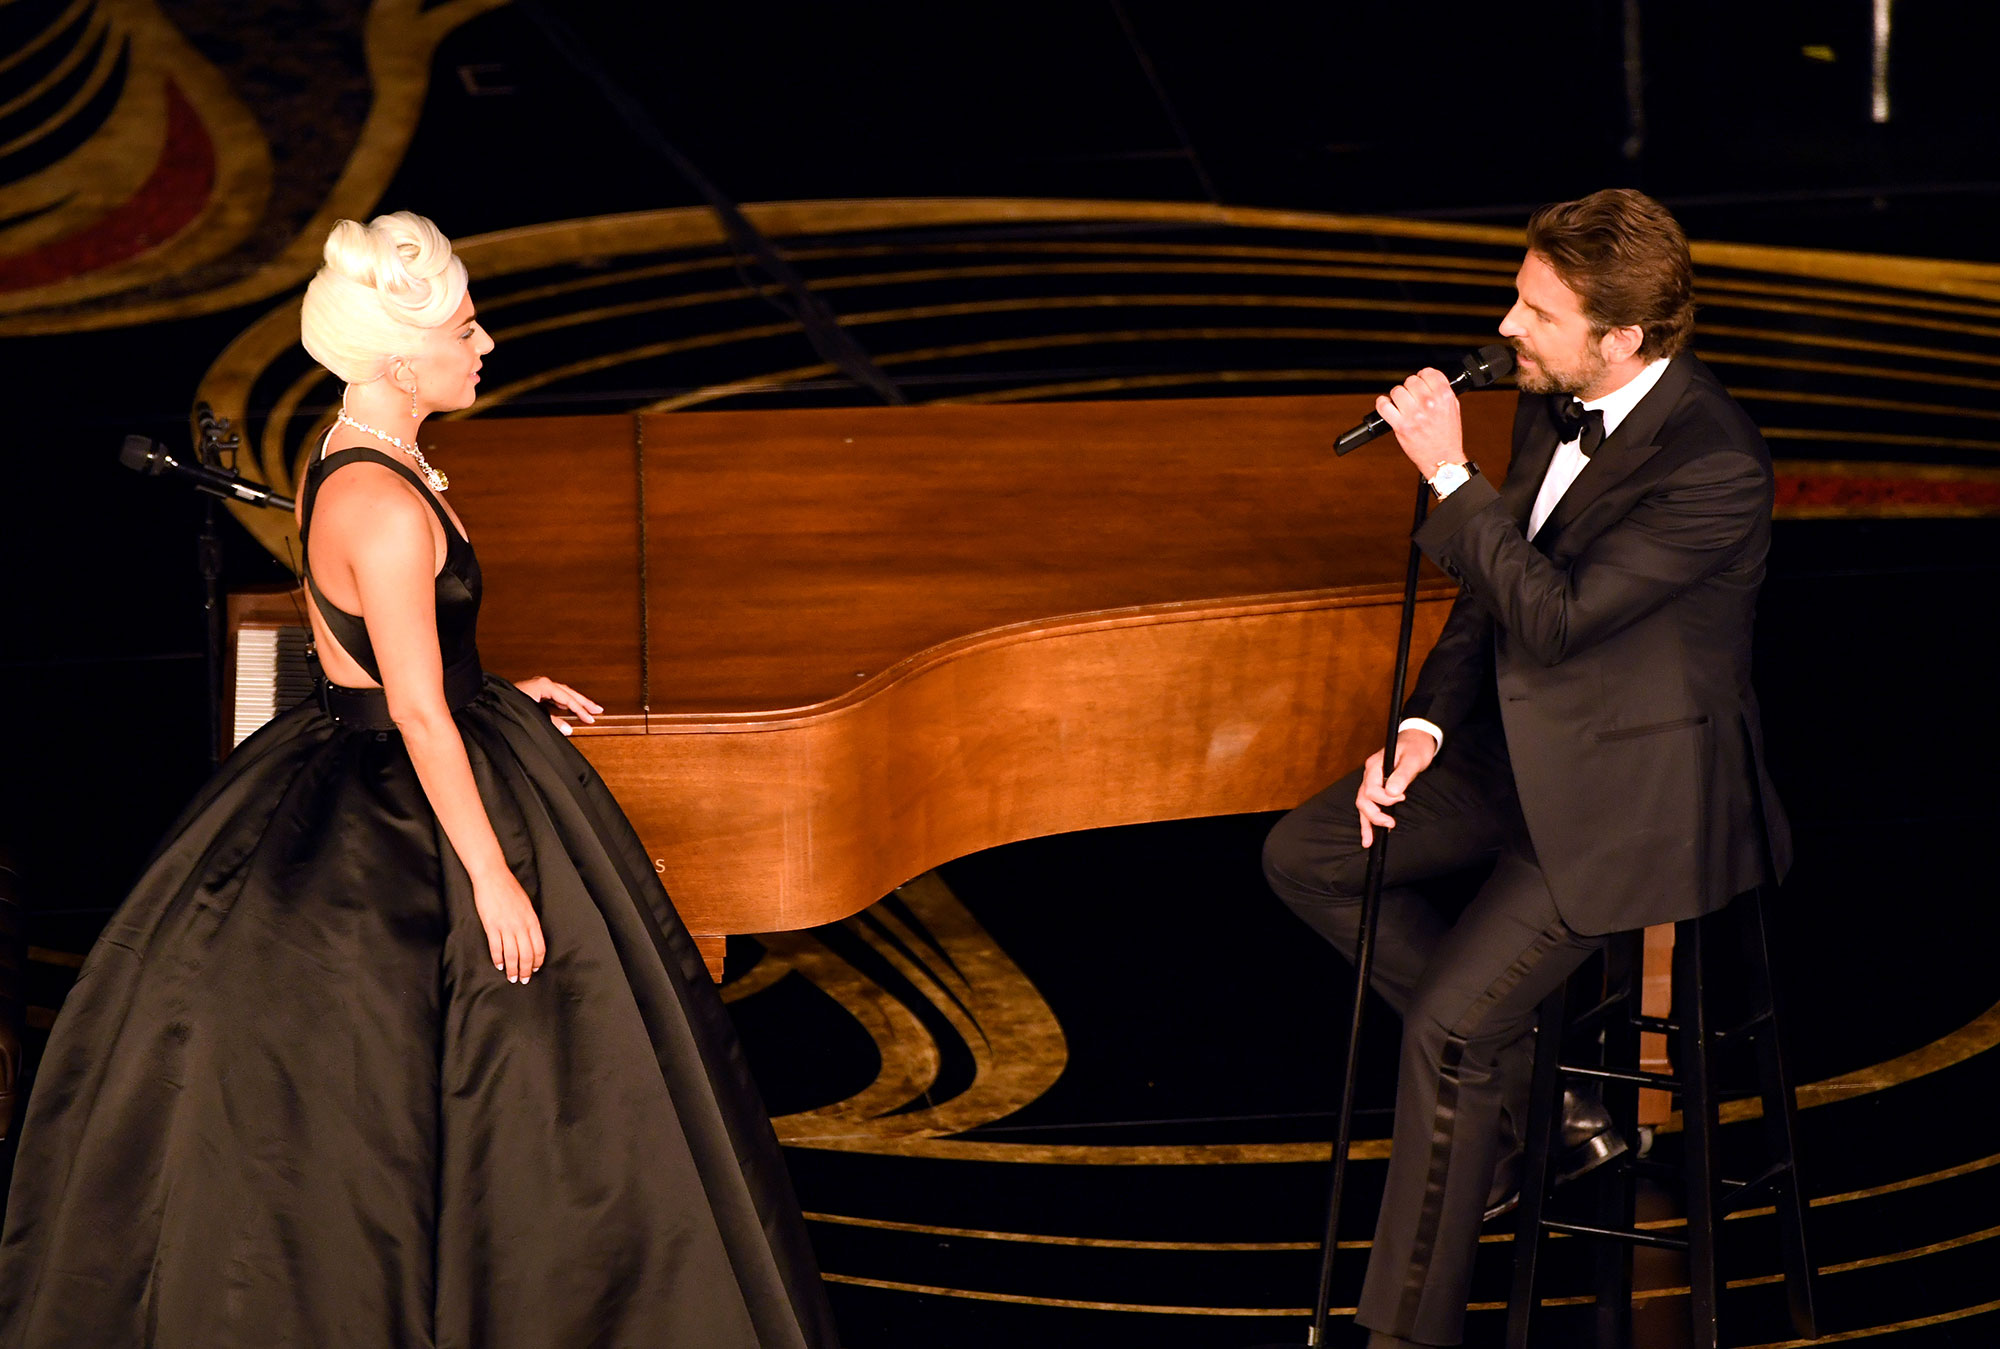 oscars 2019 Lady Gaga and Bradley Cooper